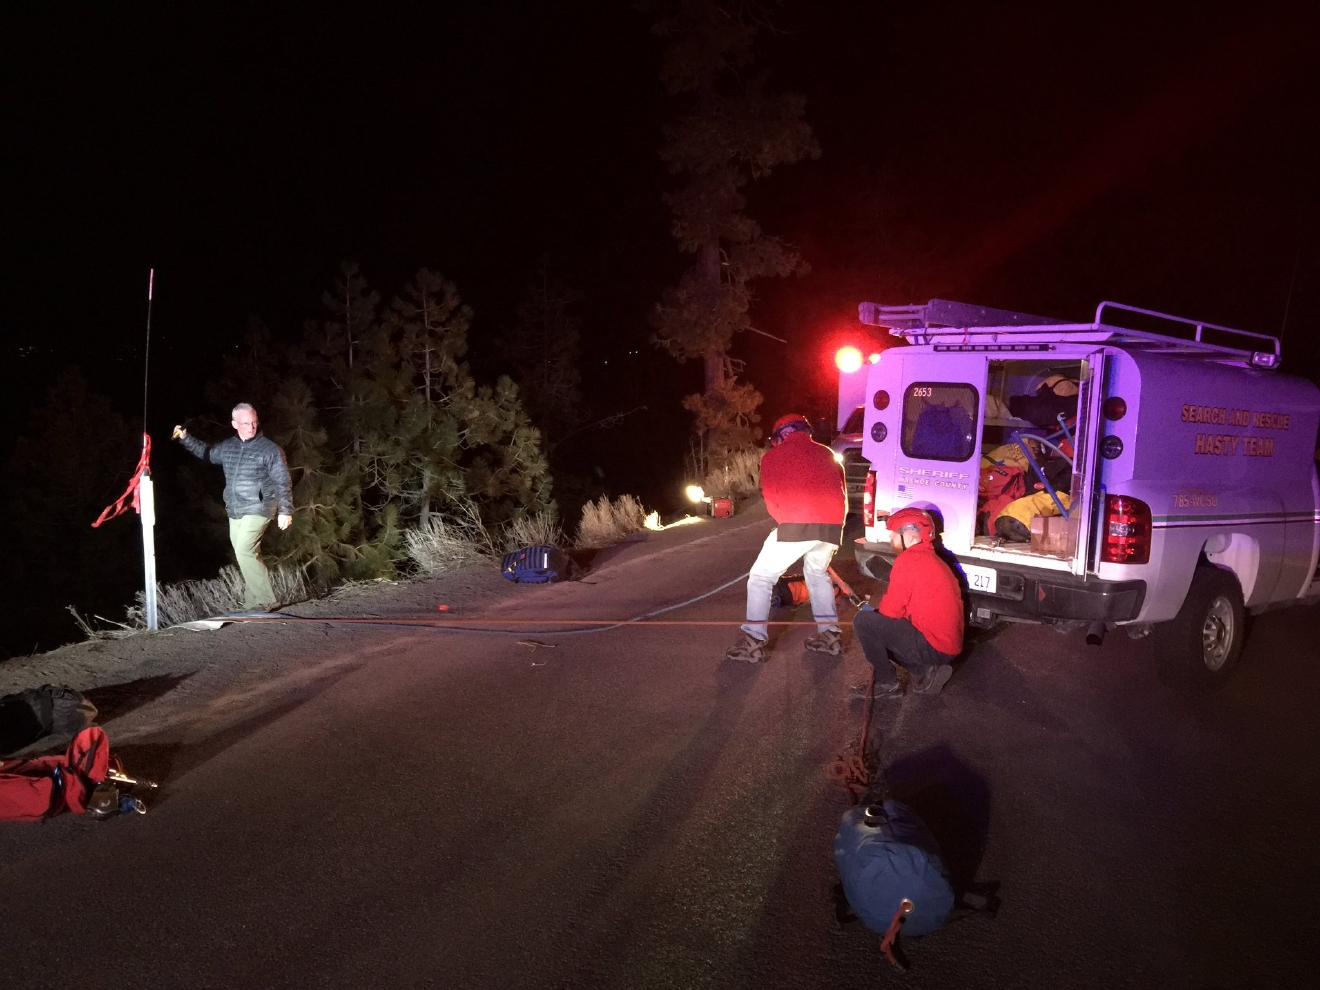 Crews rescue injured hiker near Bonsai Rock at Lake Tahoe. (Courtesy: Washoe County Sheriff's Office)